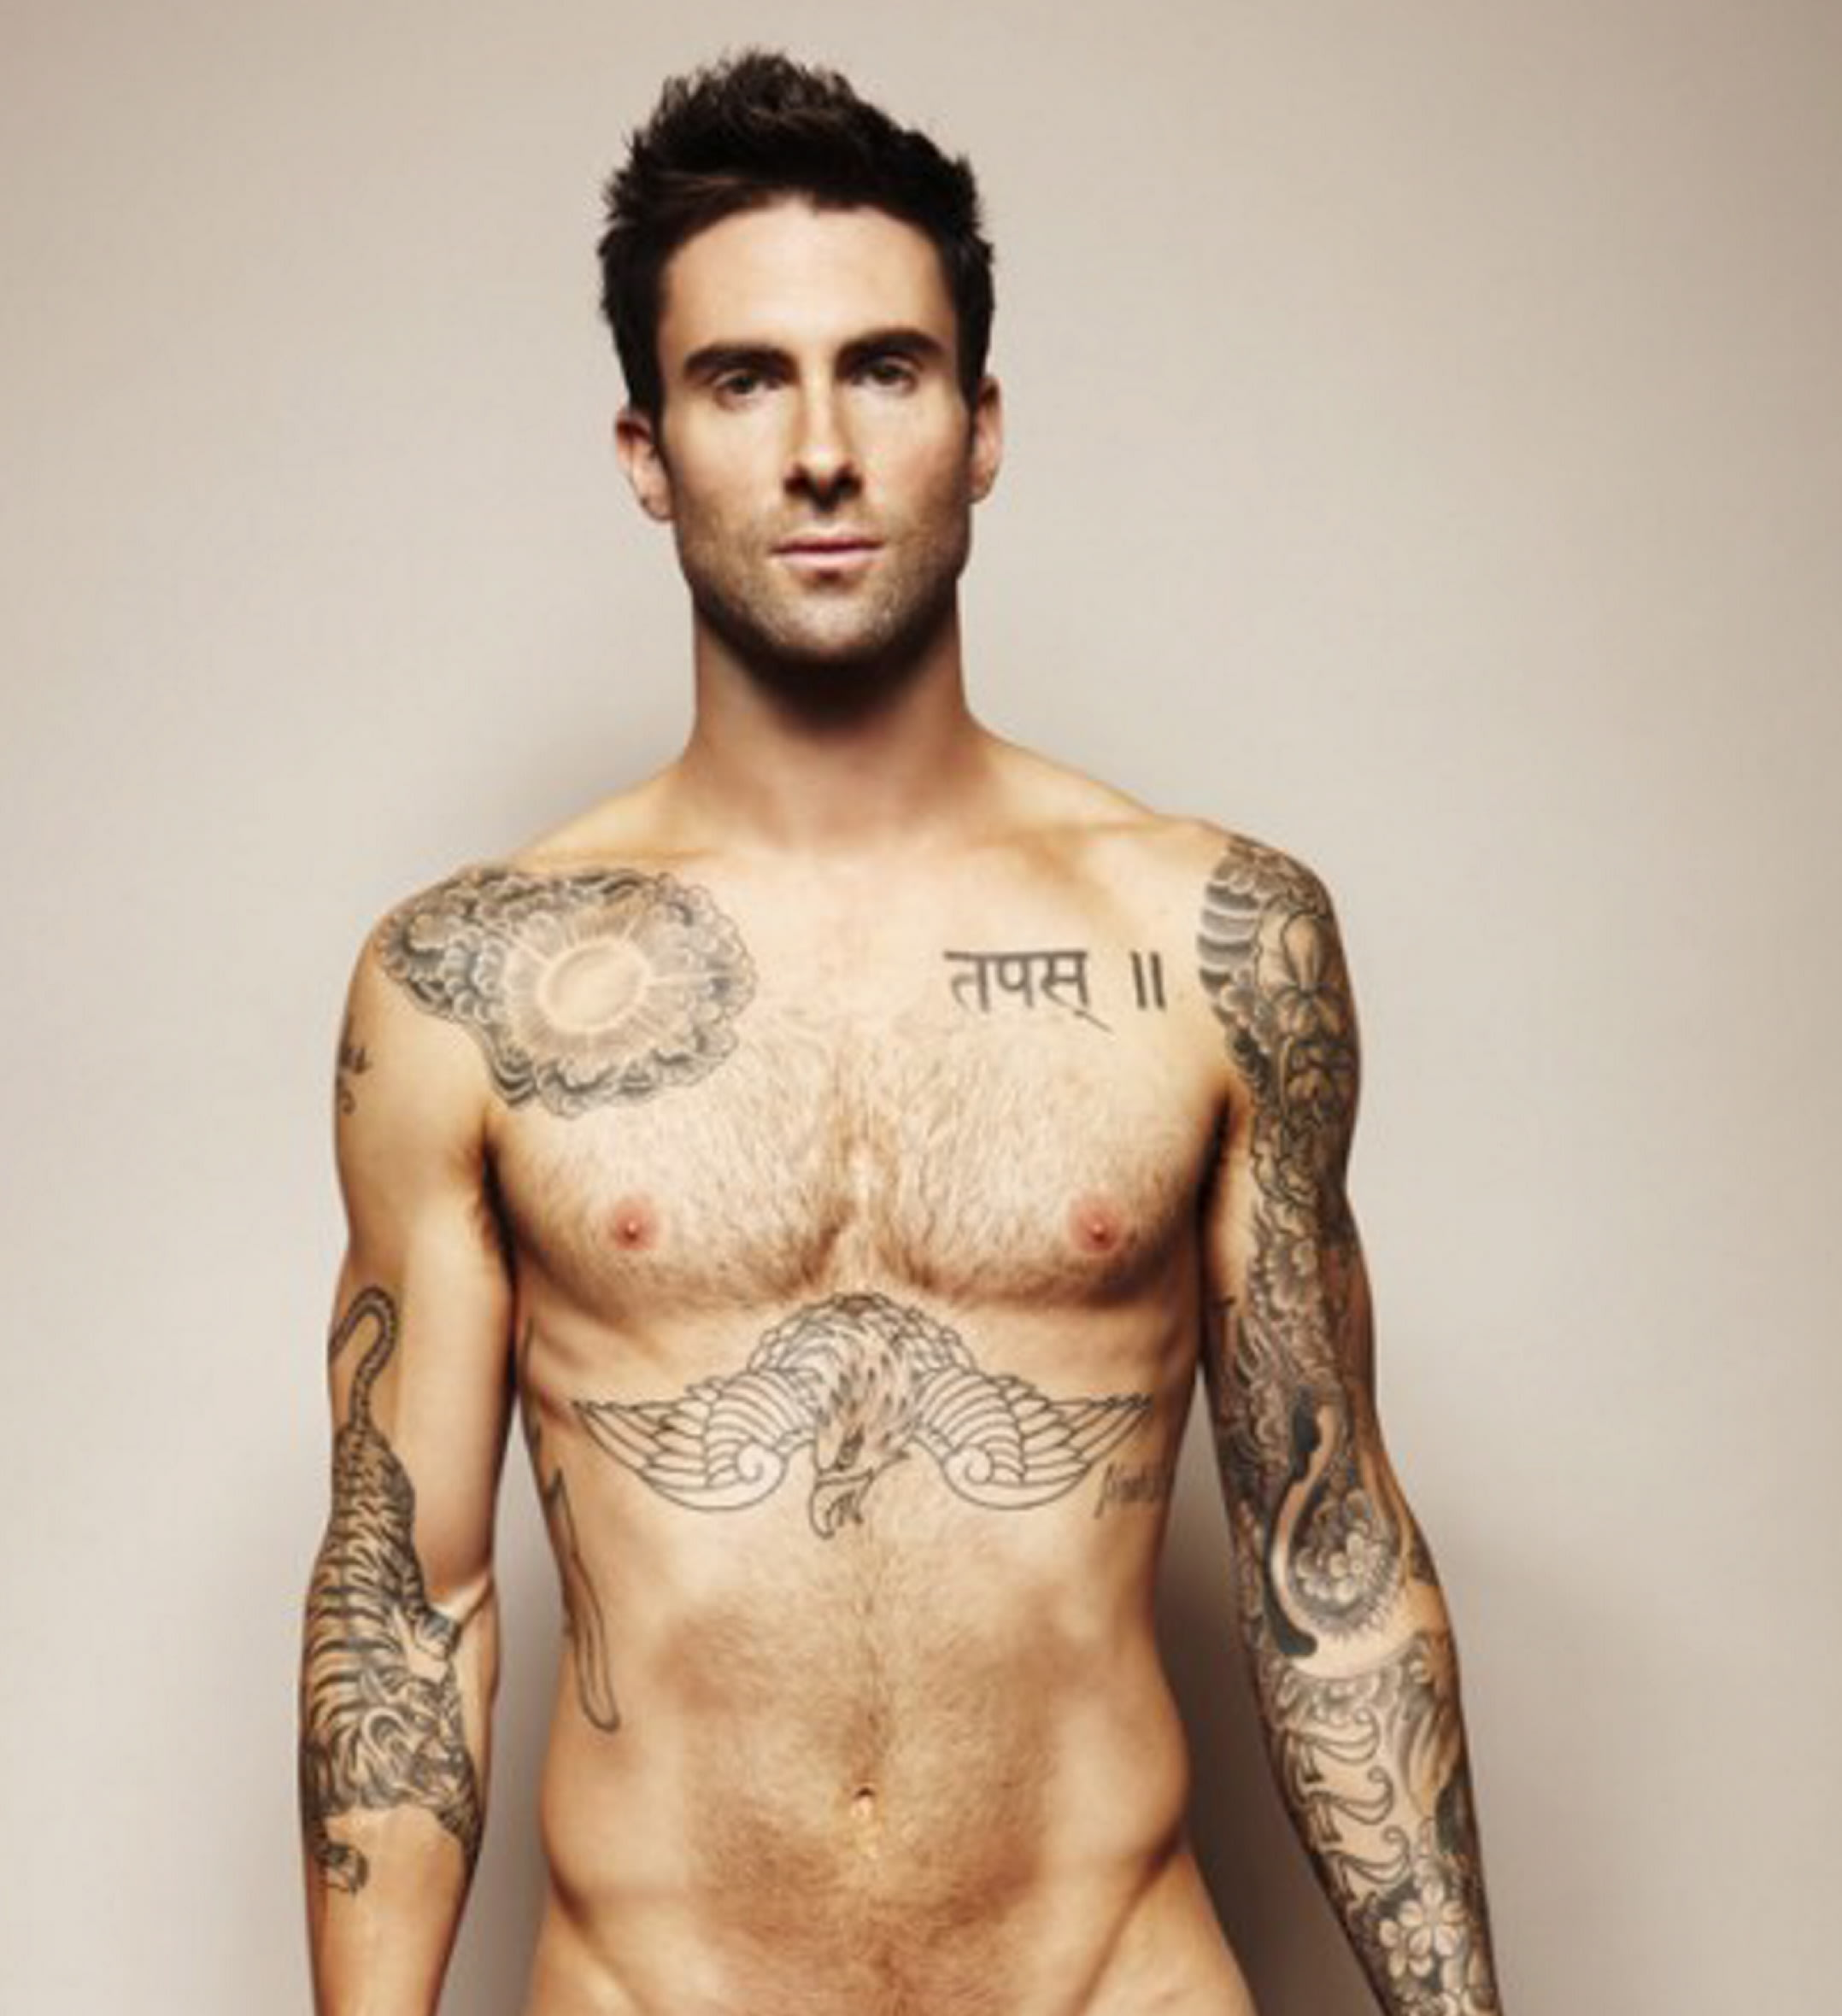 Adam levine l 39 uomo pi sexy del mondo topic per donne e per gli invidiosi discussioni in